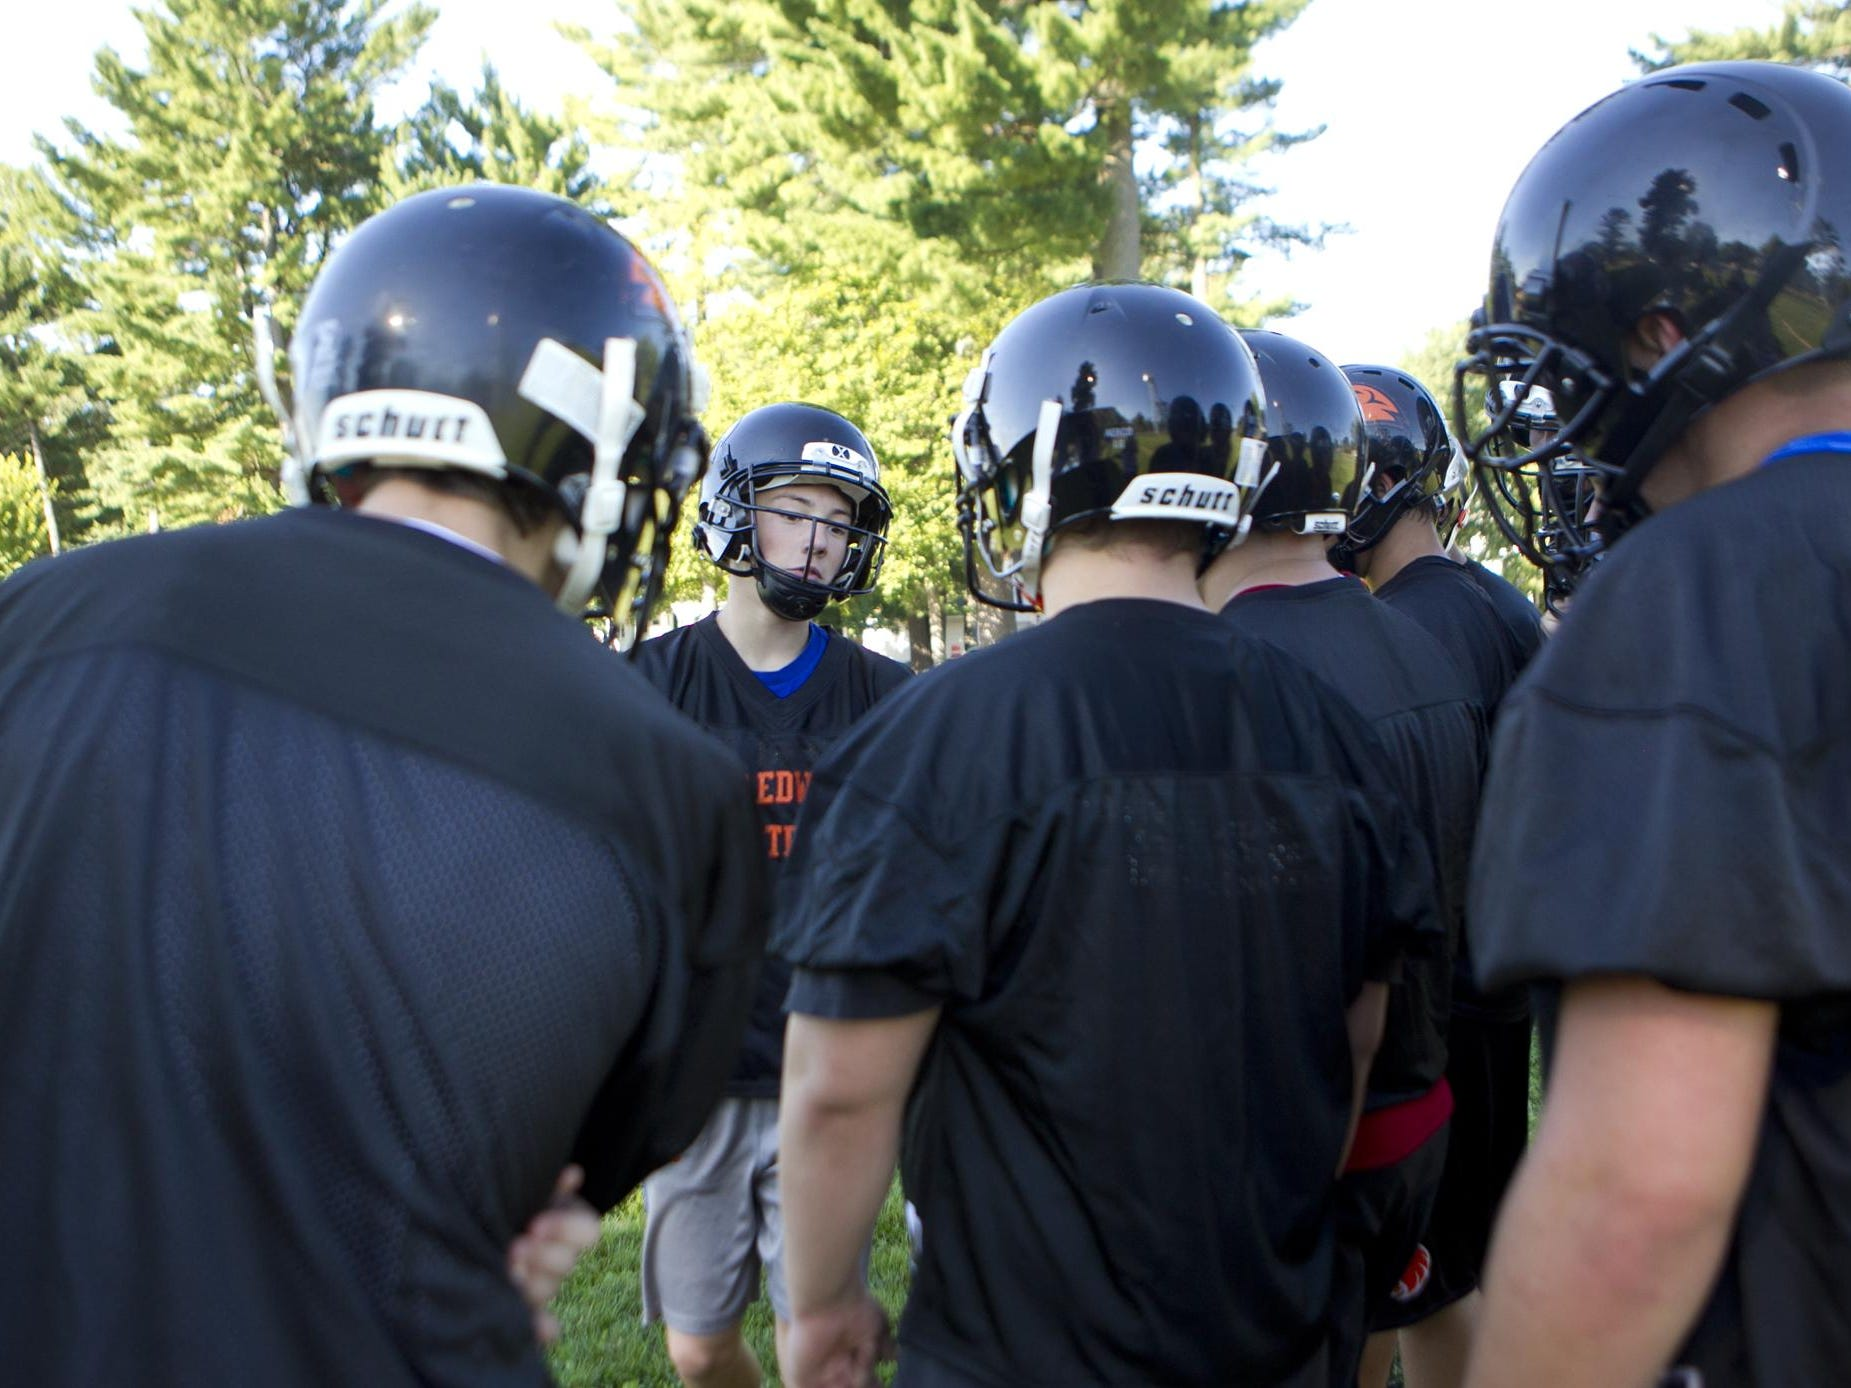 Quarterback Ian Gibbs huddles up with his teammates during the first day of football practice at John Edwards High School, Tuesday, Aug. 4, 2015.